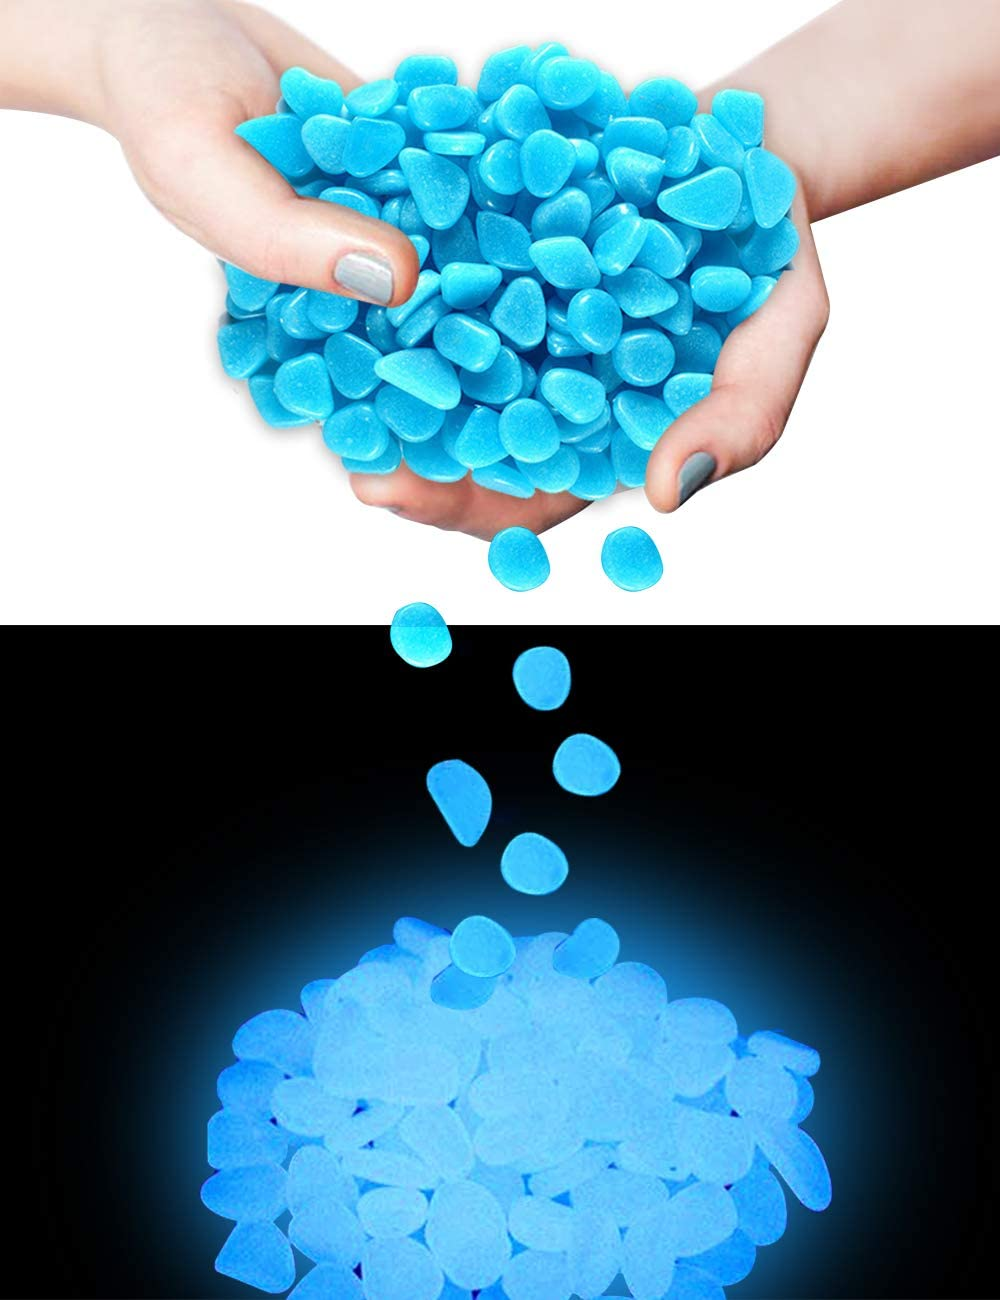 【400 Pcs】 Glow in The Dark Rocks,Glowing Stones Garden Glow in The Dark Pebbles Outdoor Decorative Stones Small Patio Decor Garden Decorations